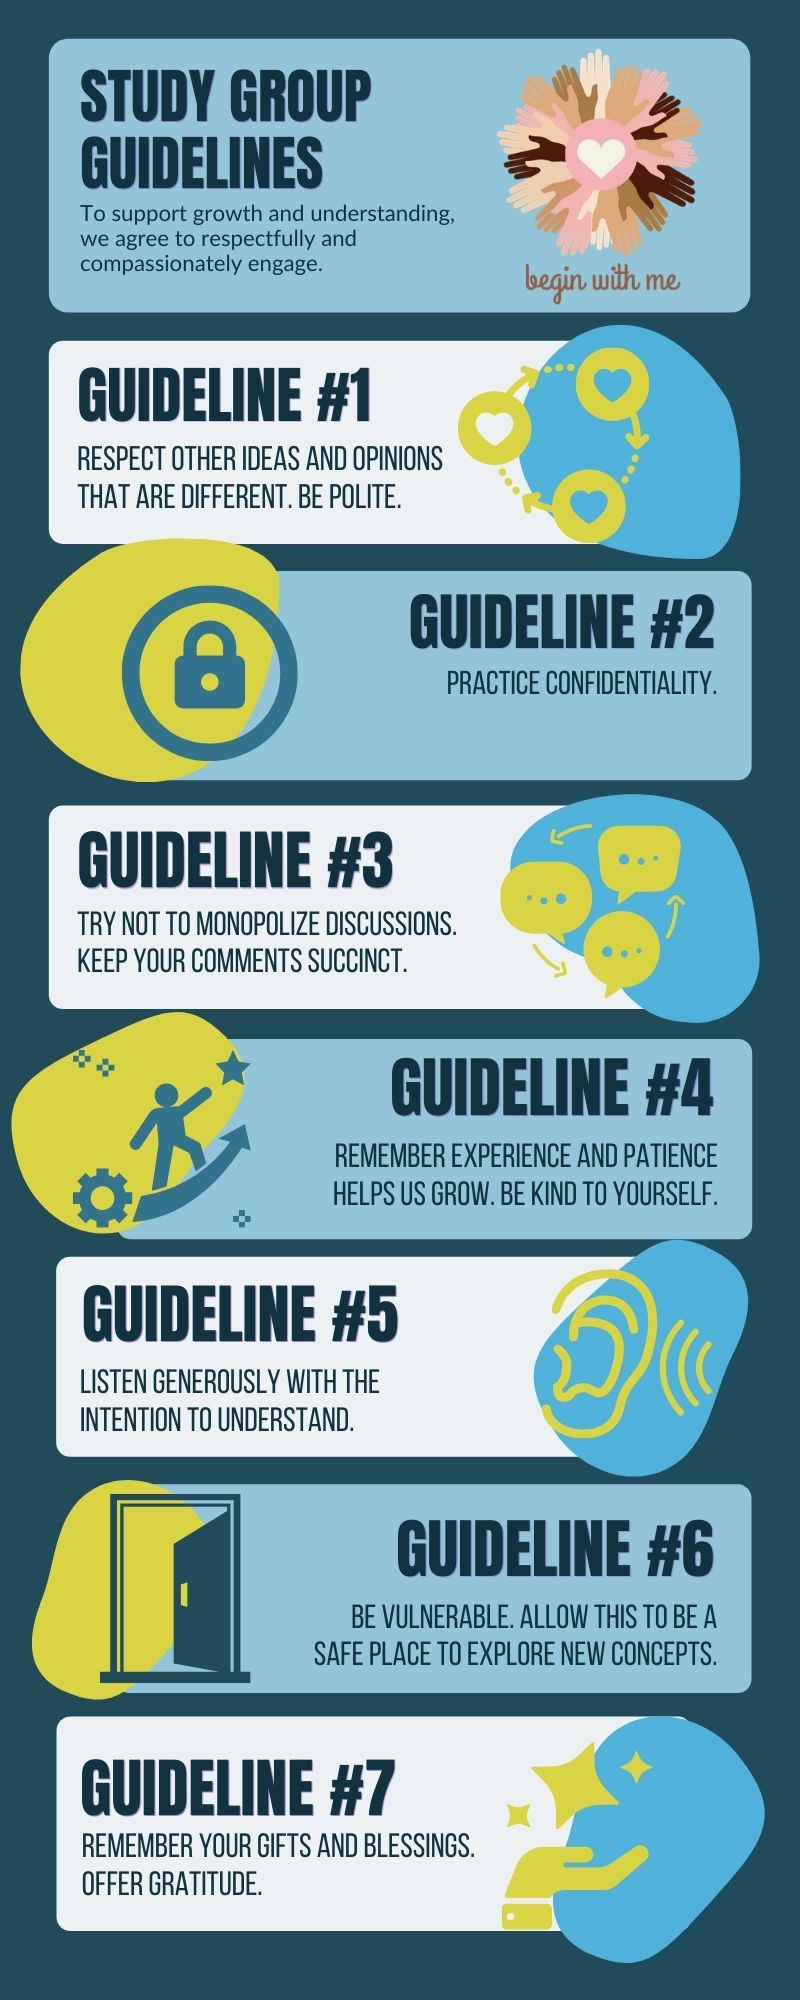 info graphic of study group guidelines